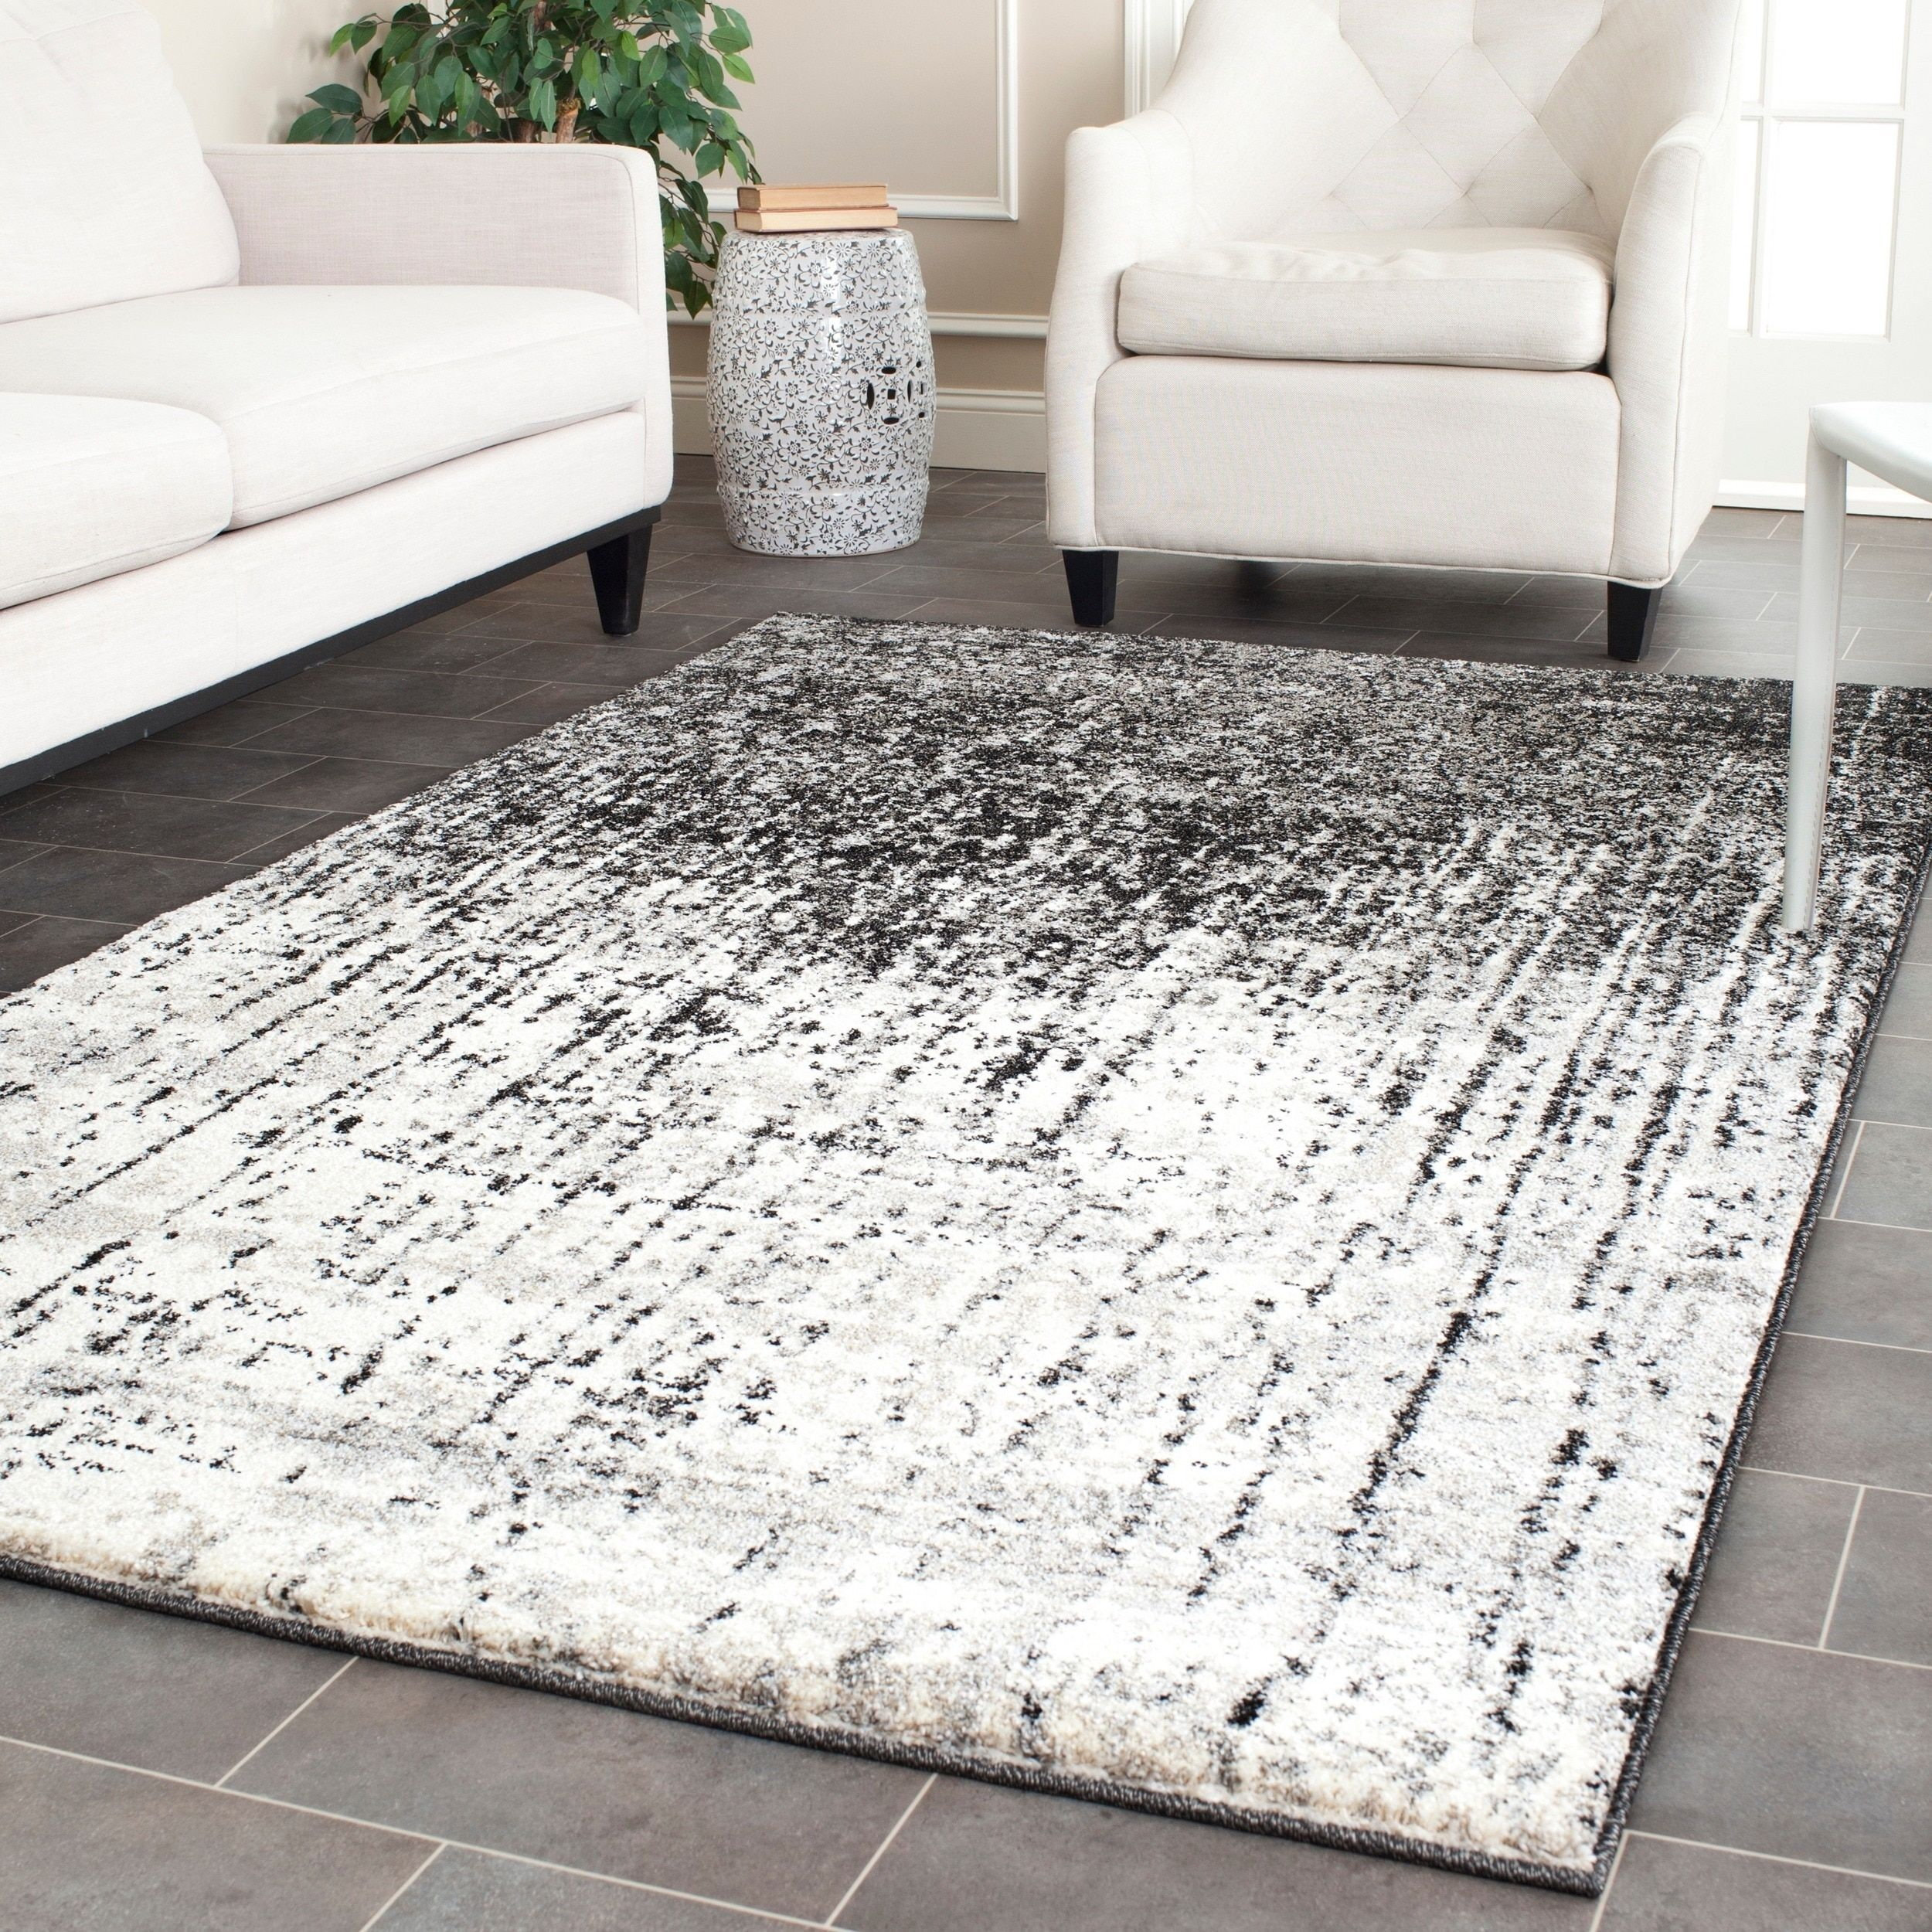 on sale area rugs free shipping on orders over 45 find the